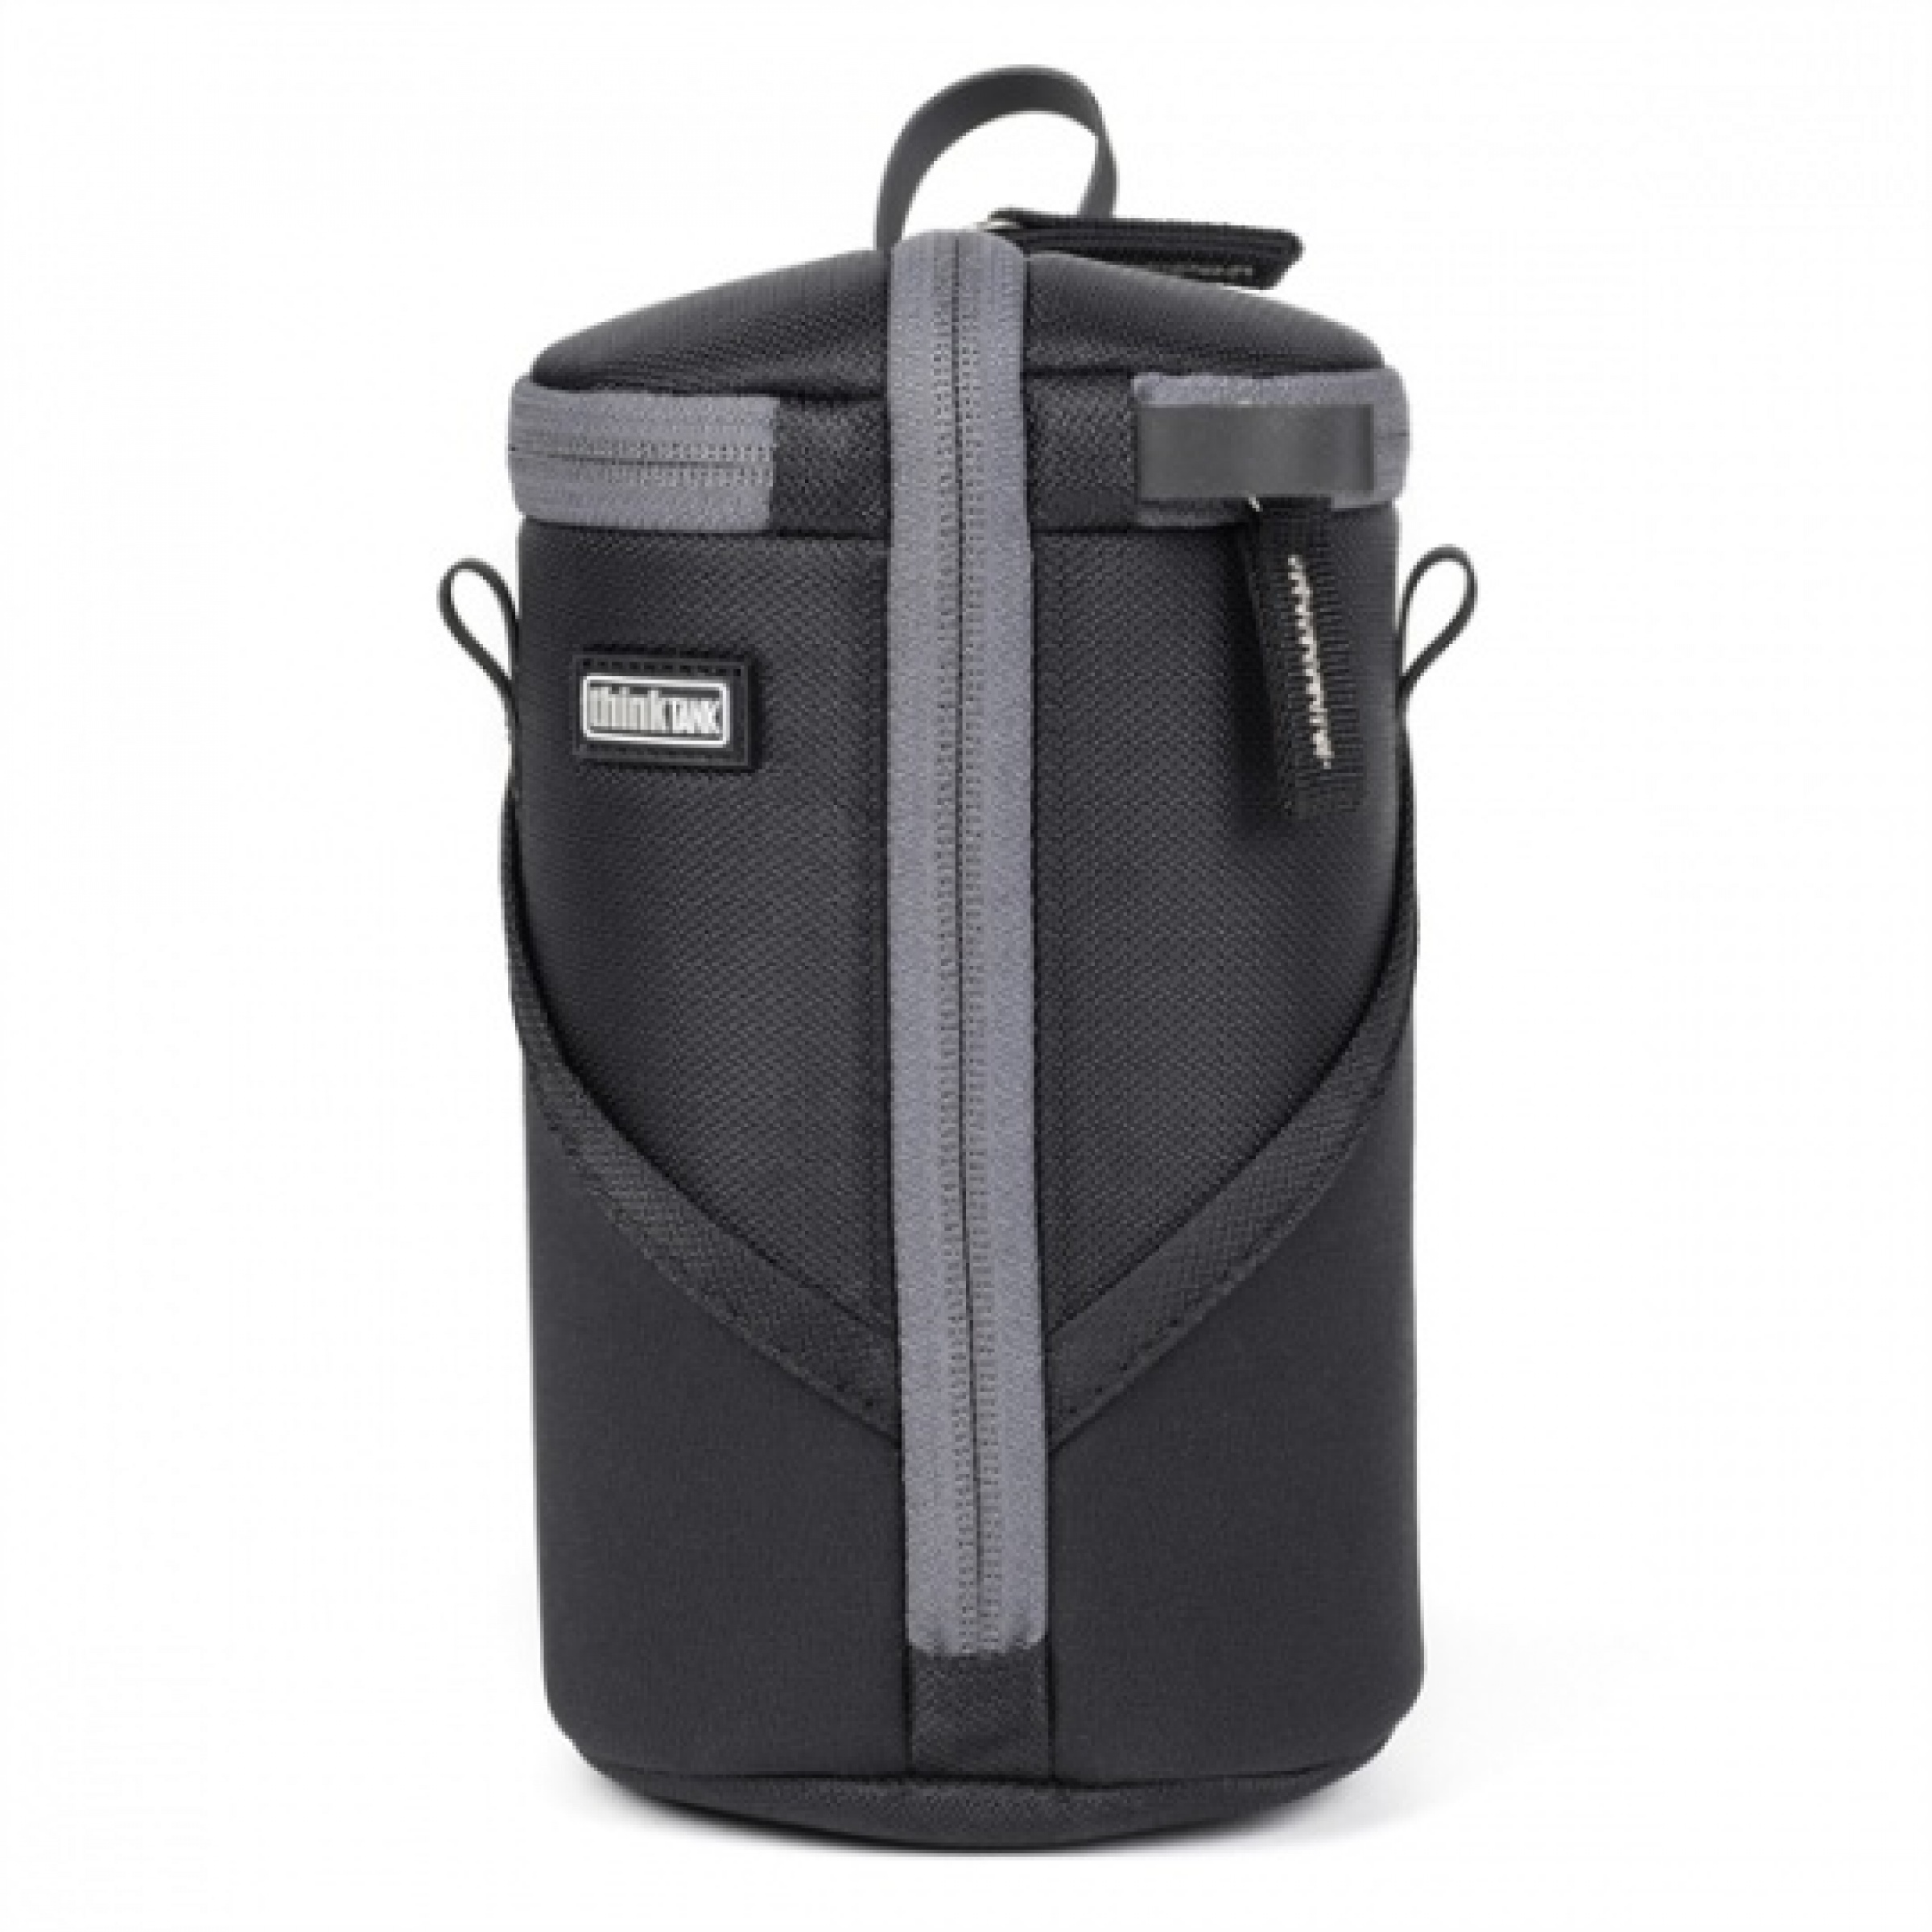 Think-Tank-Lens-Case-Duo-15-black